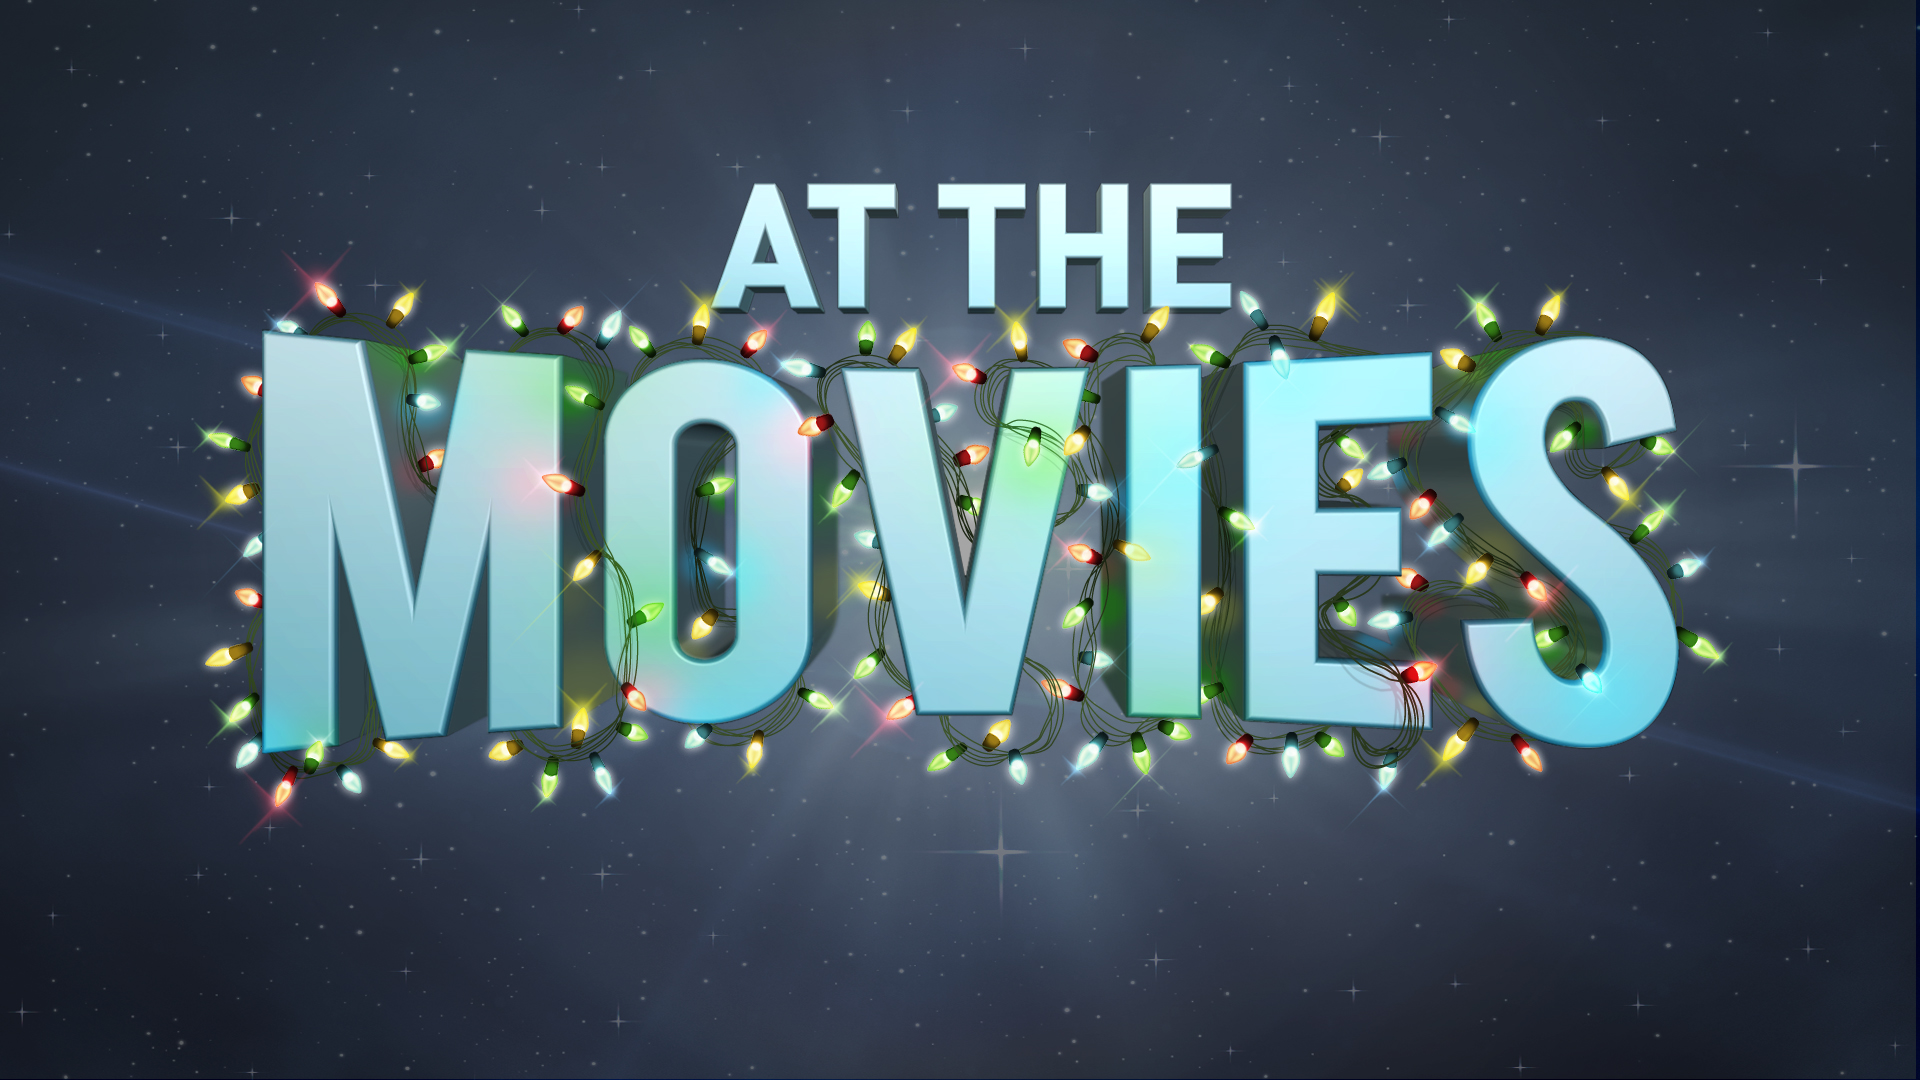 Due to legal restrictions, At the Movies will not be archived.